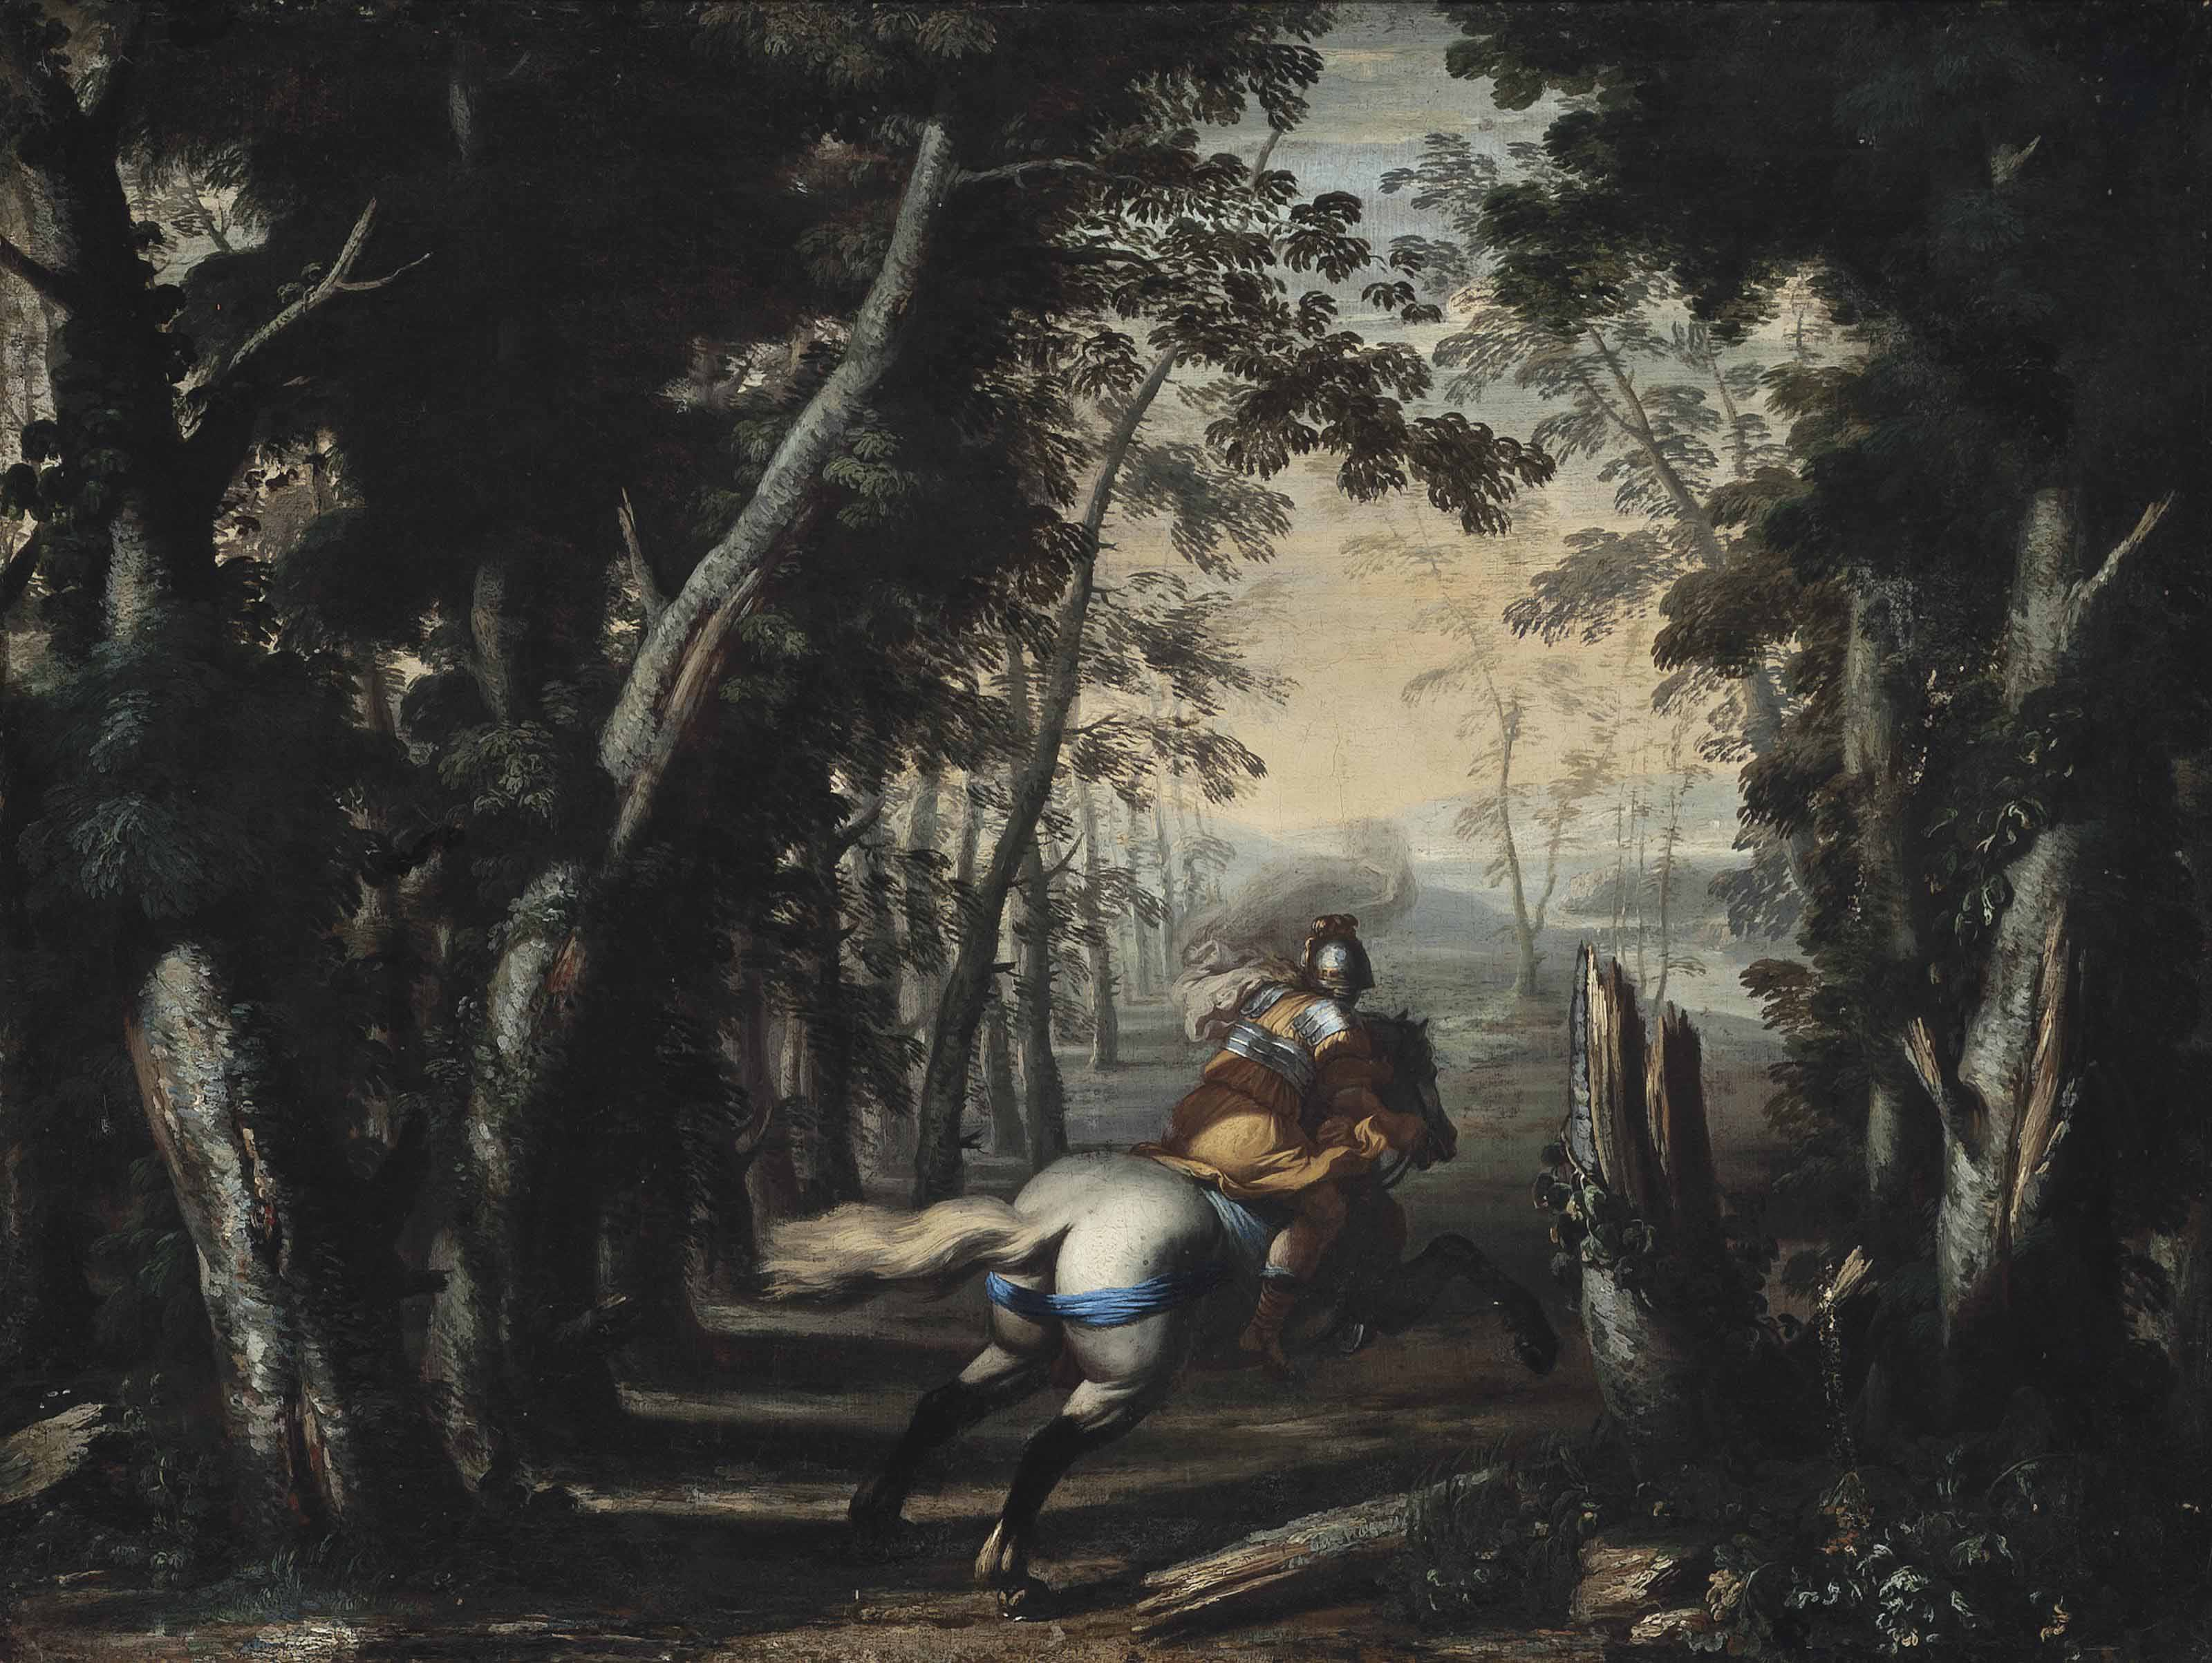 A soldier on horseback in a wooded landscape